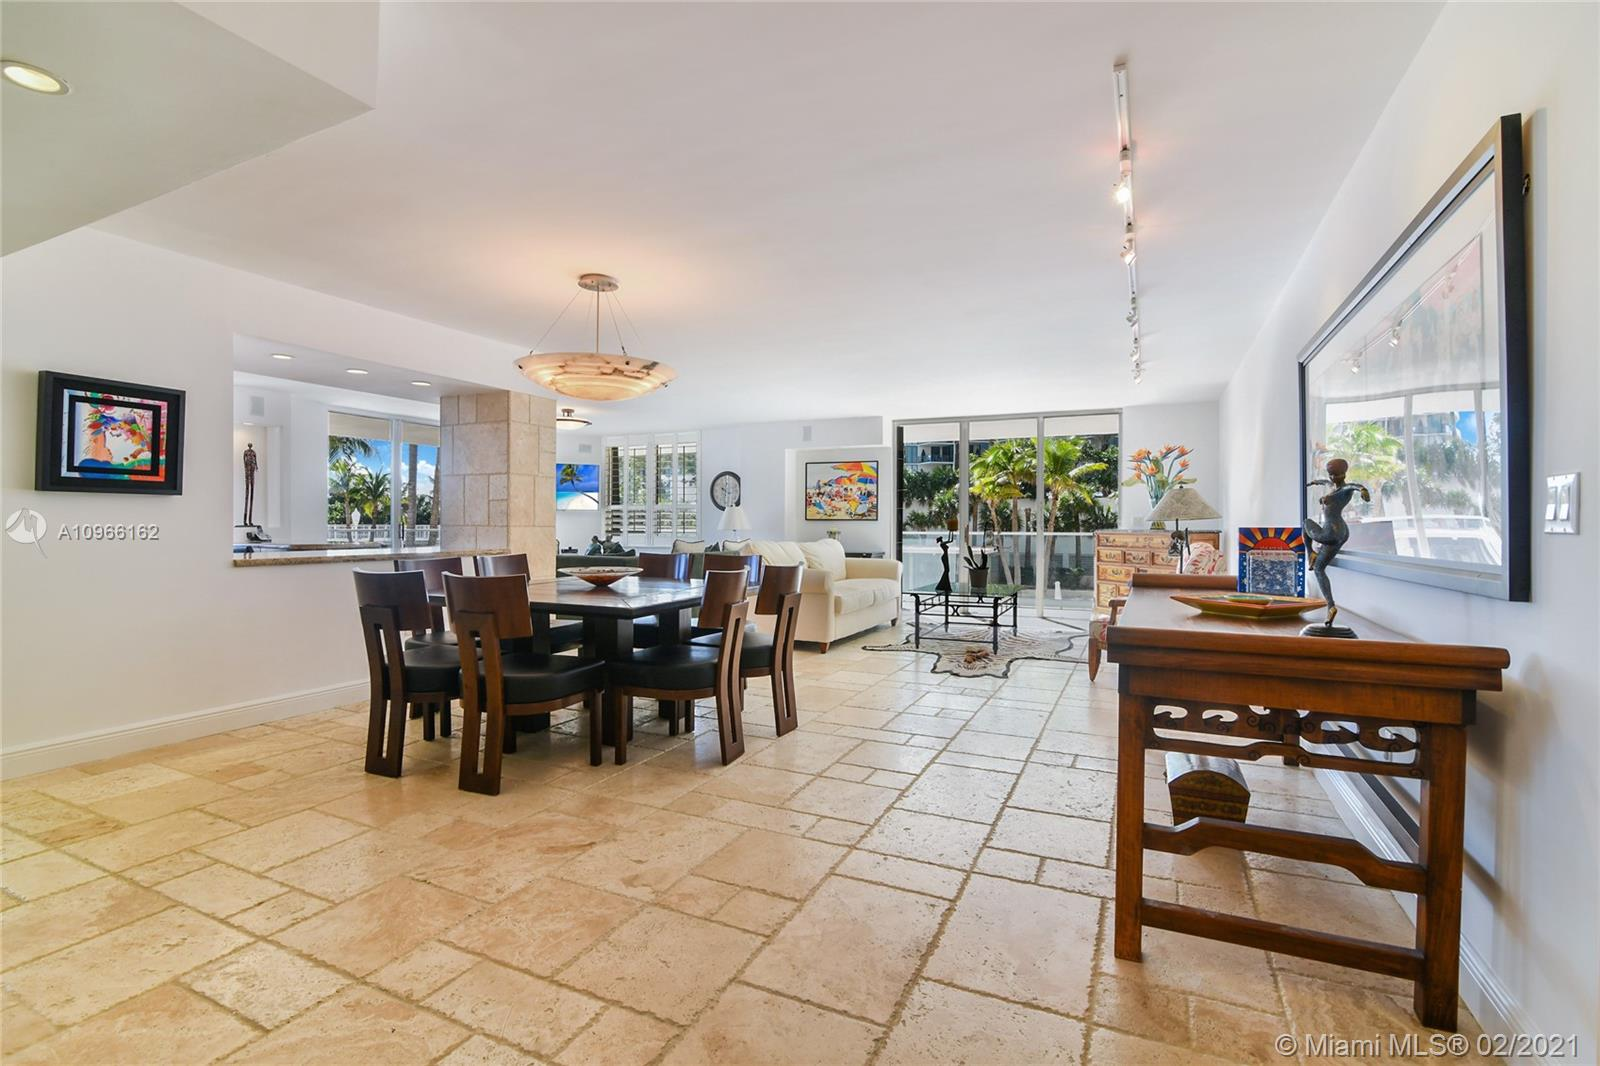 Photo of 9801 Collins Ave #4Z Direct Ocean, Bal Harbour, Florida, 33154 - Looking the entrance door Dinning-room and open kitchen